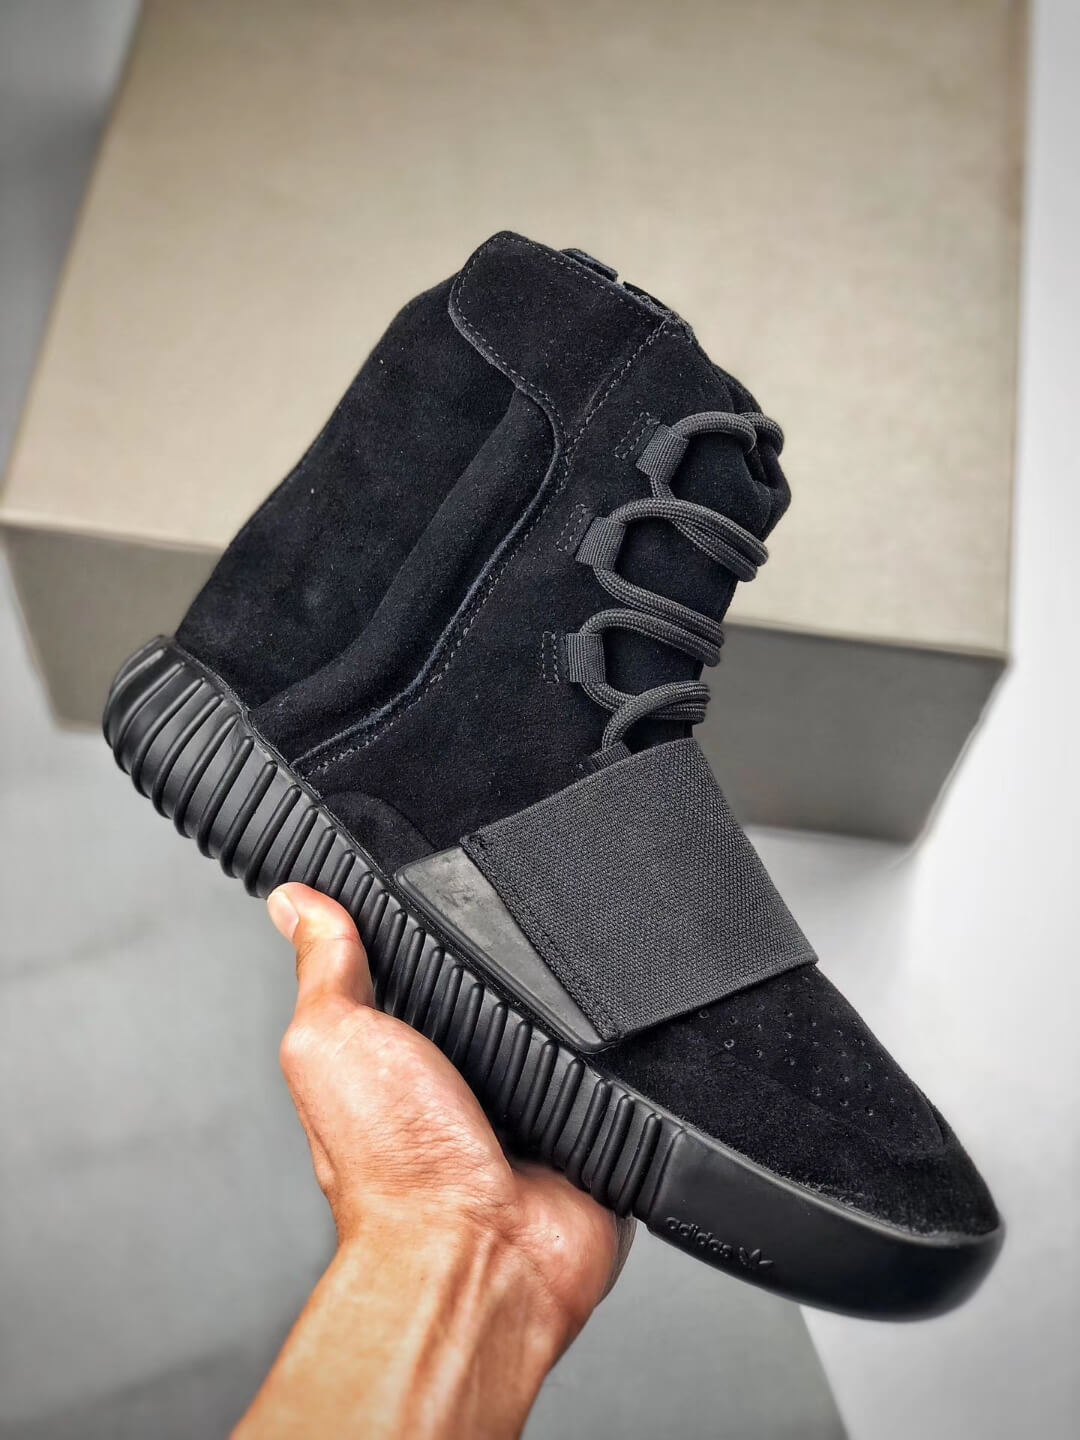 The Adidas Yeezy Boost 750 Triple Black Suede Quality Rep Sneaker 01